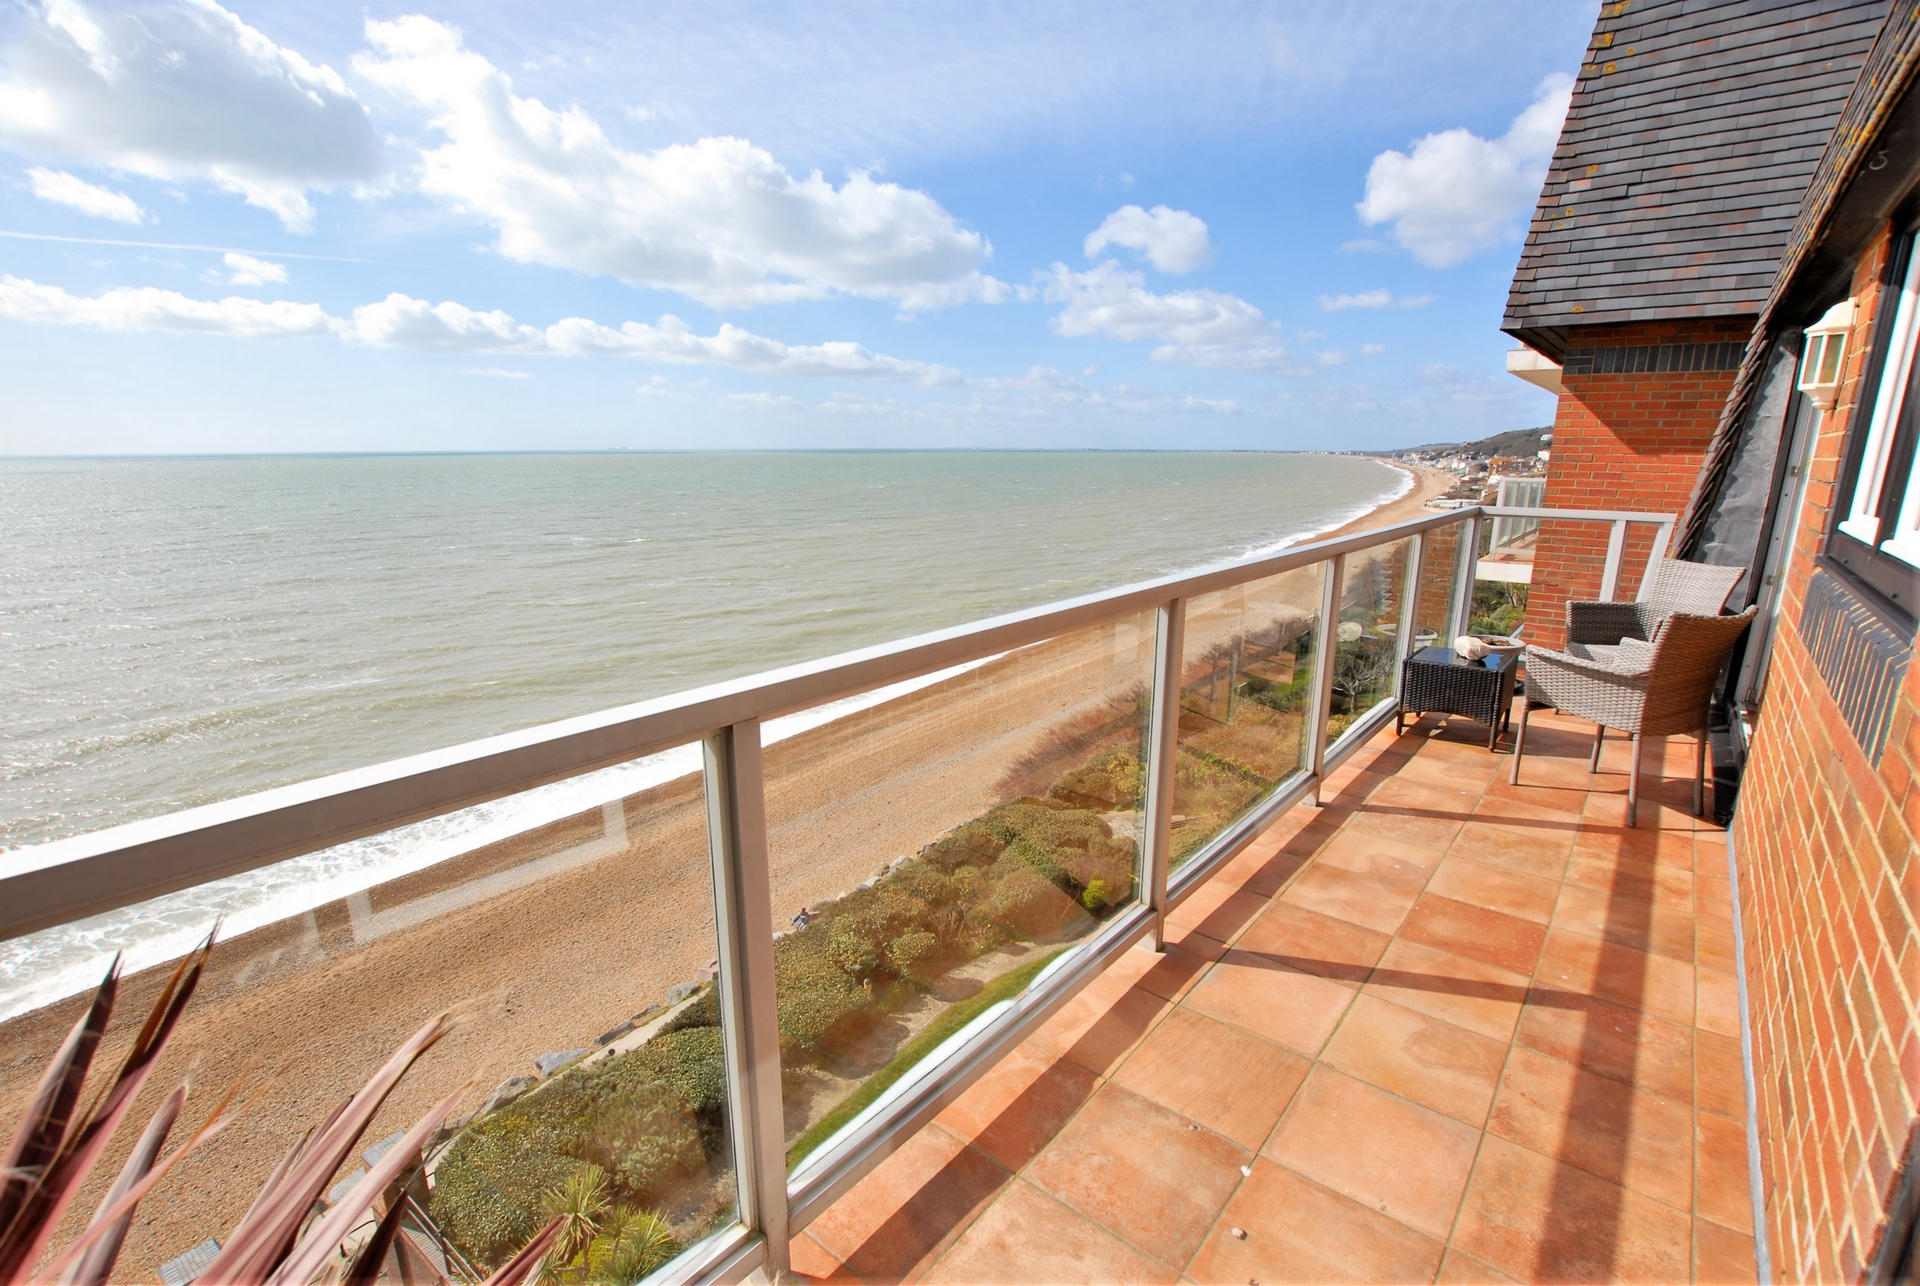 Balcony, Radnor Cliff, Sandgate, CT20